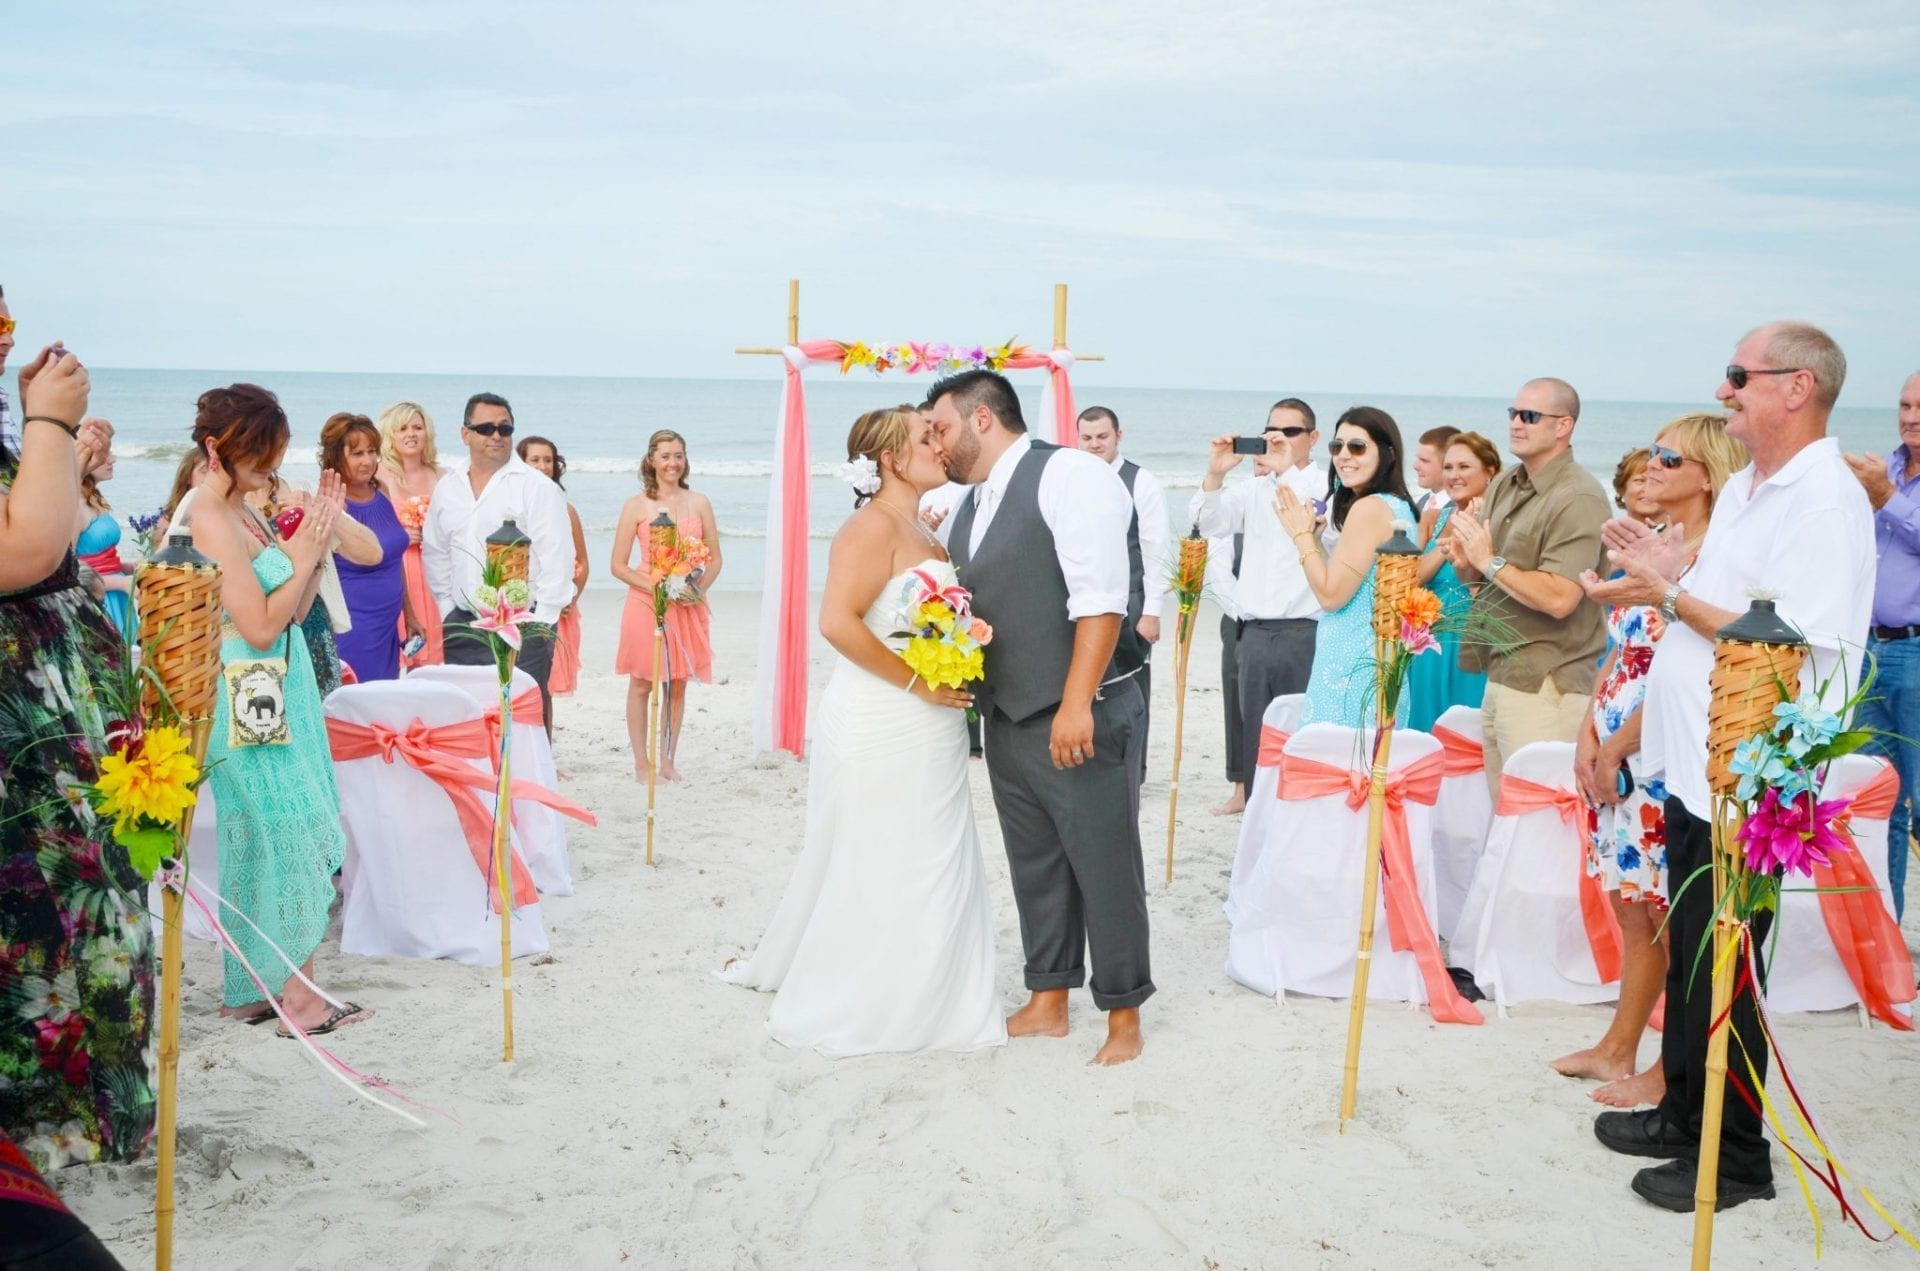 Beach Wedding Guests celebrating the newly married couple at their beach wedding in Florida